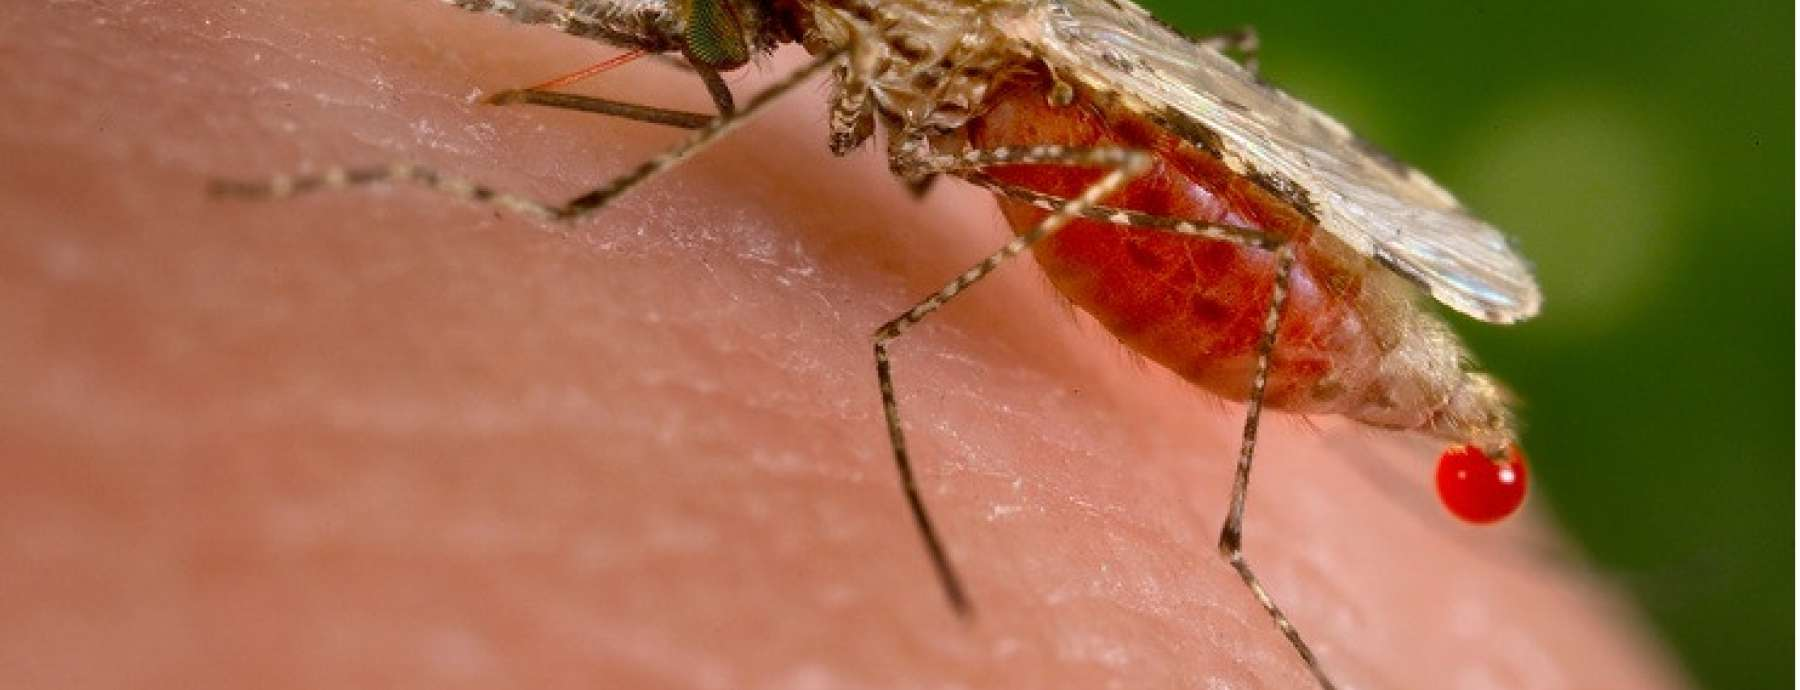 Control strategy for Dengue, malaria increases risk of West Nile virus